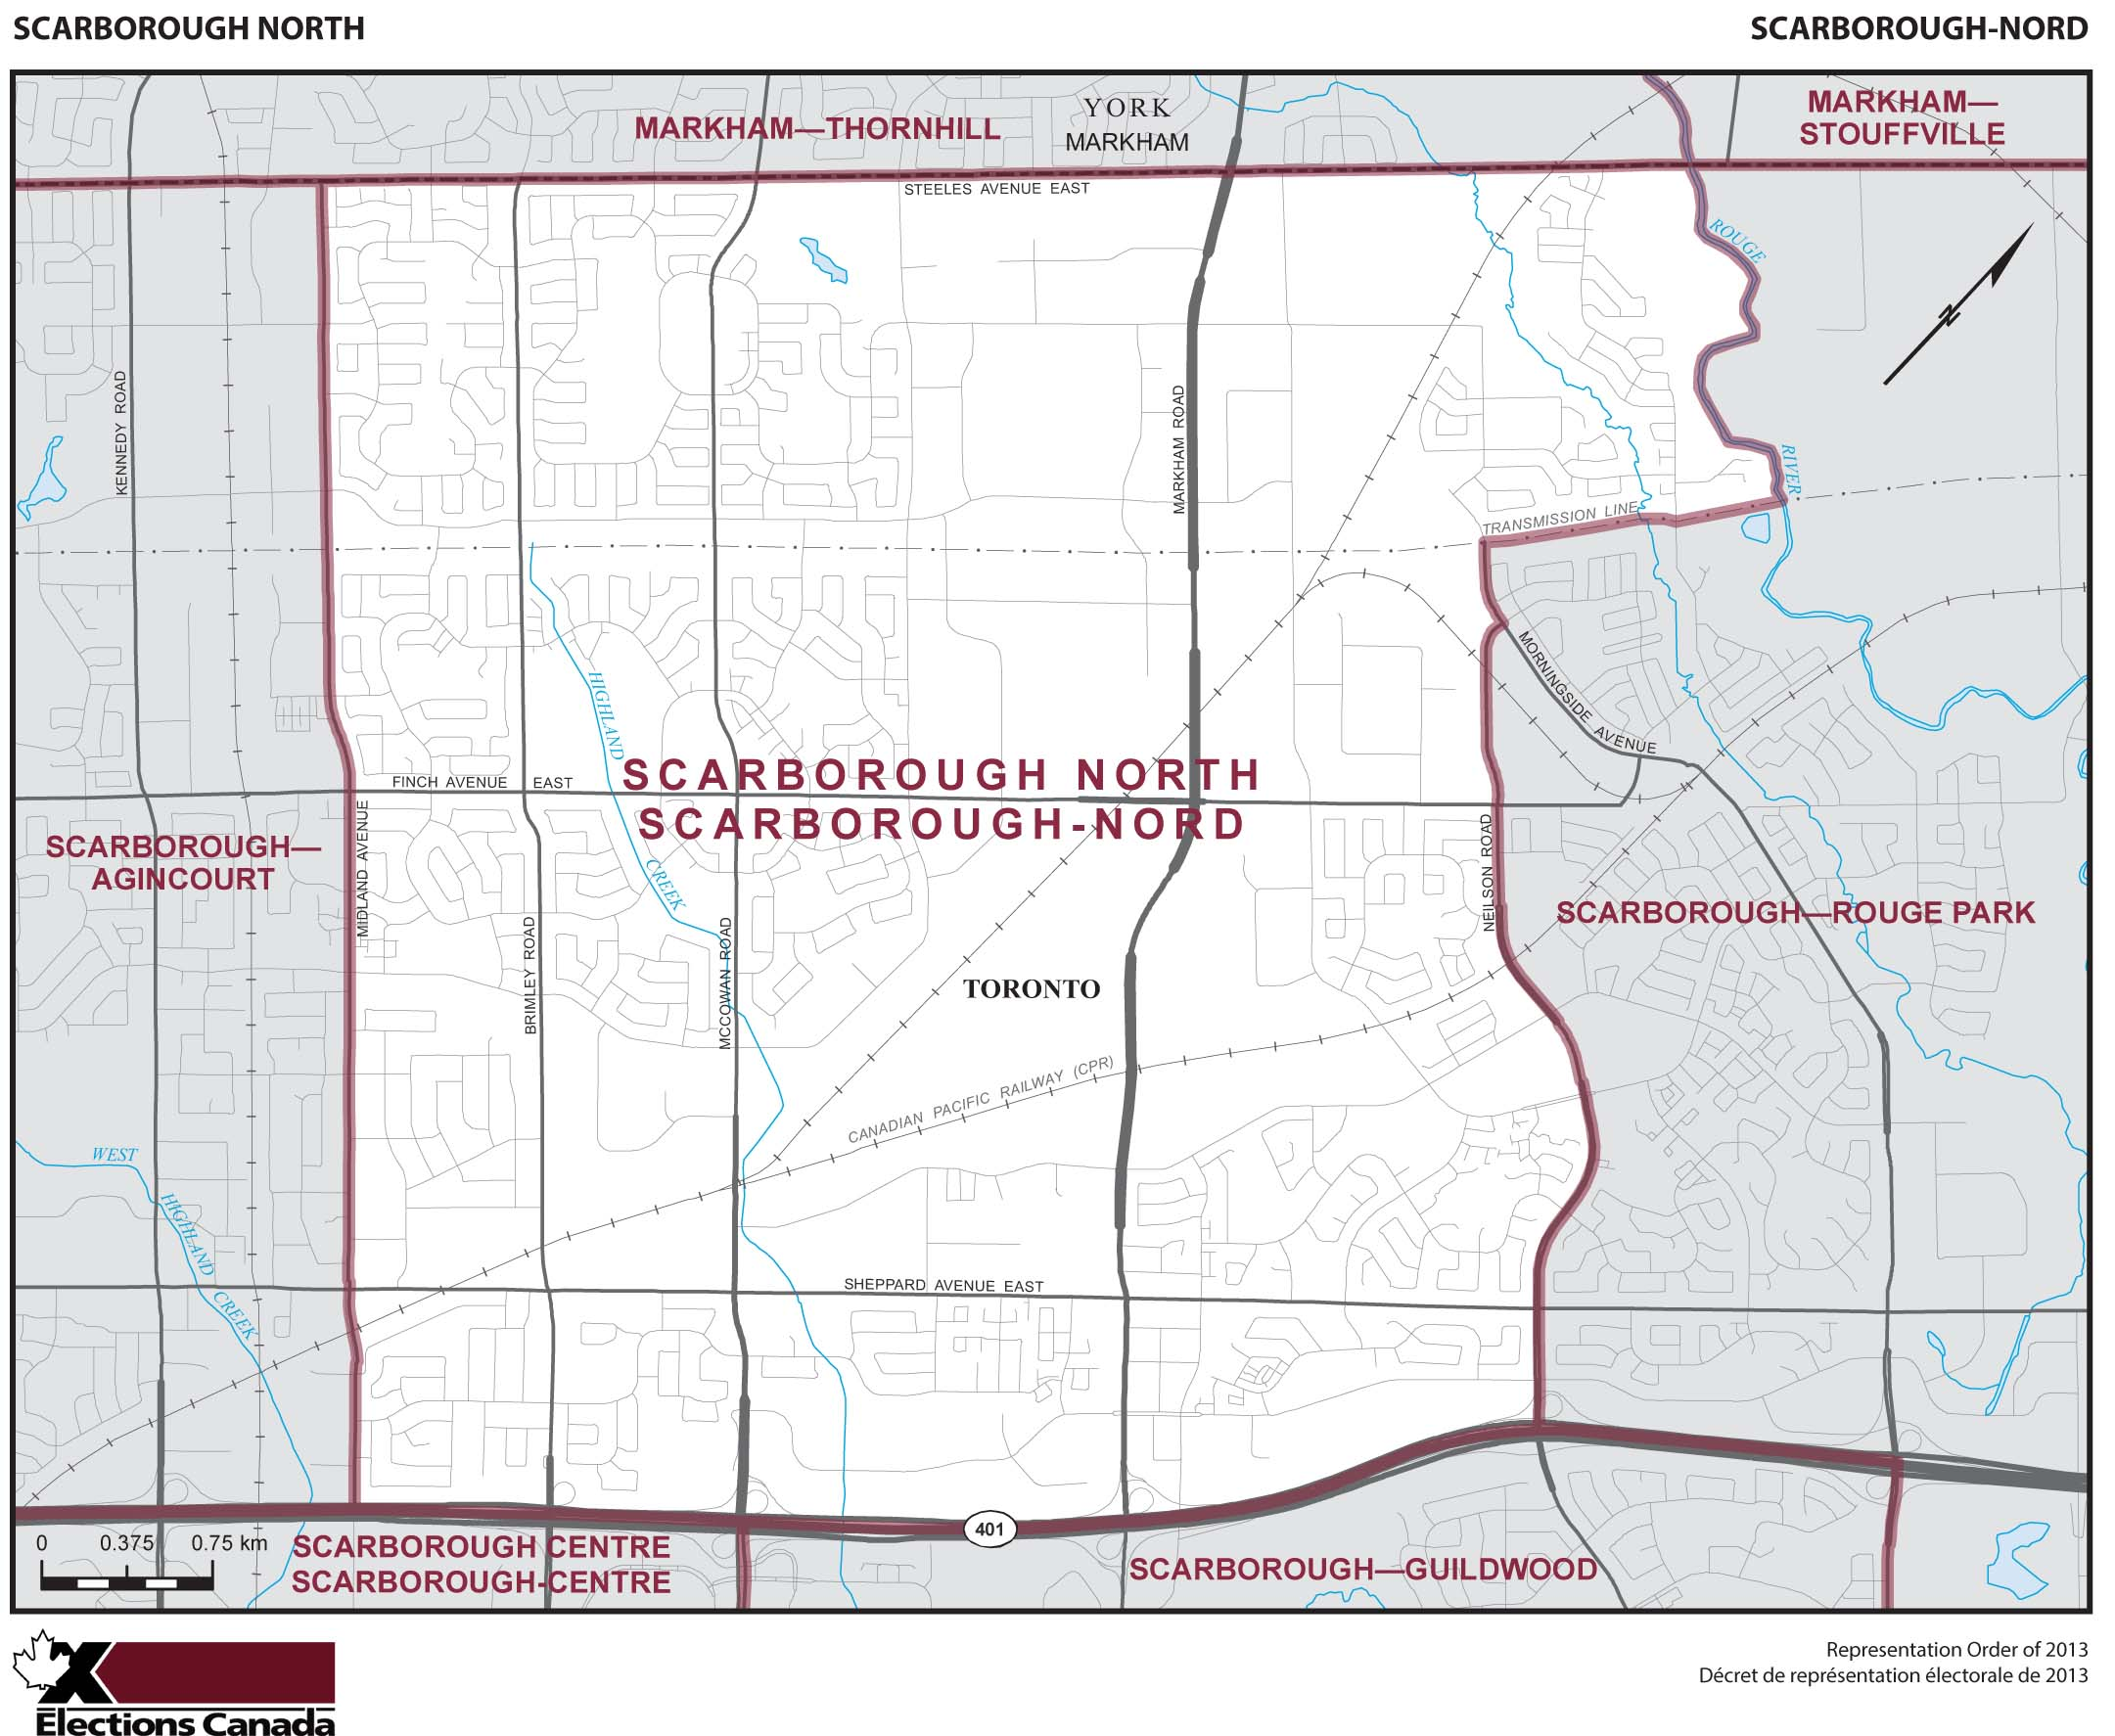 Map: Scarborough North, Federal electoral district, 2013 Representation Order (in white), Ontario